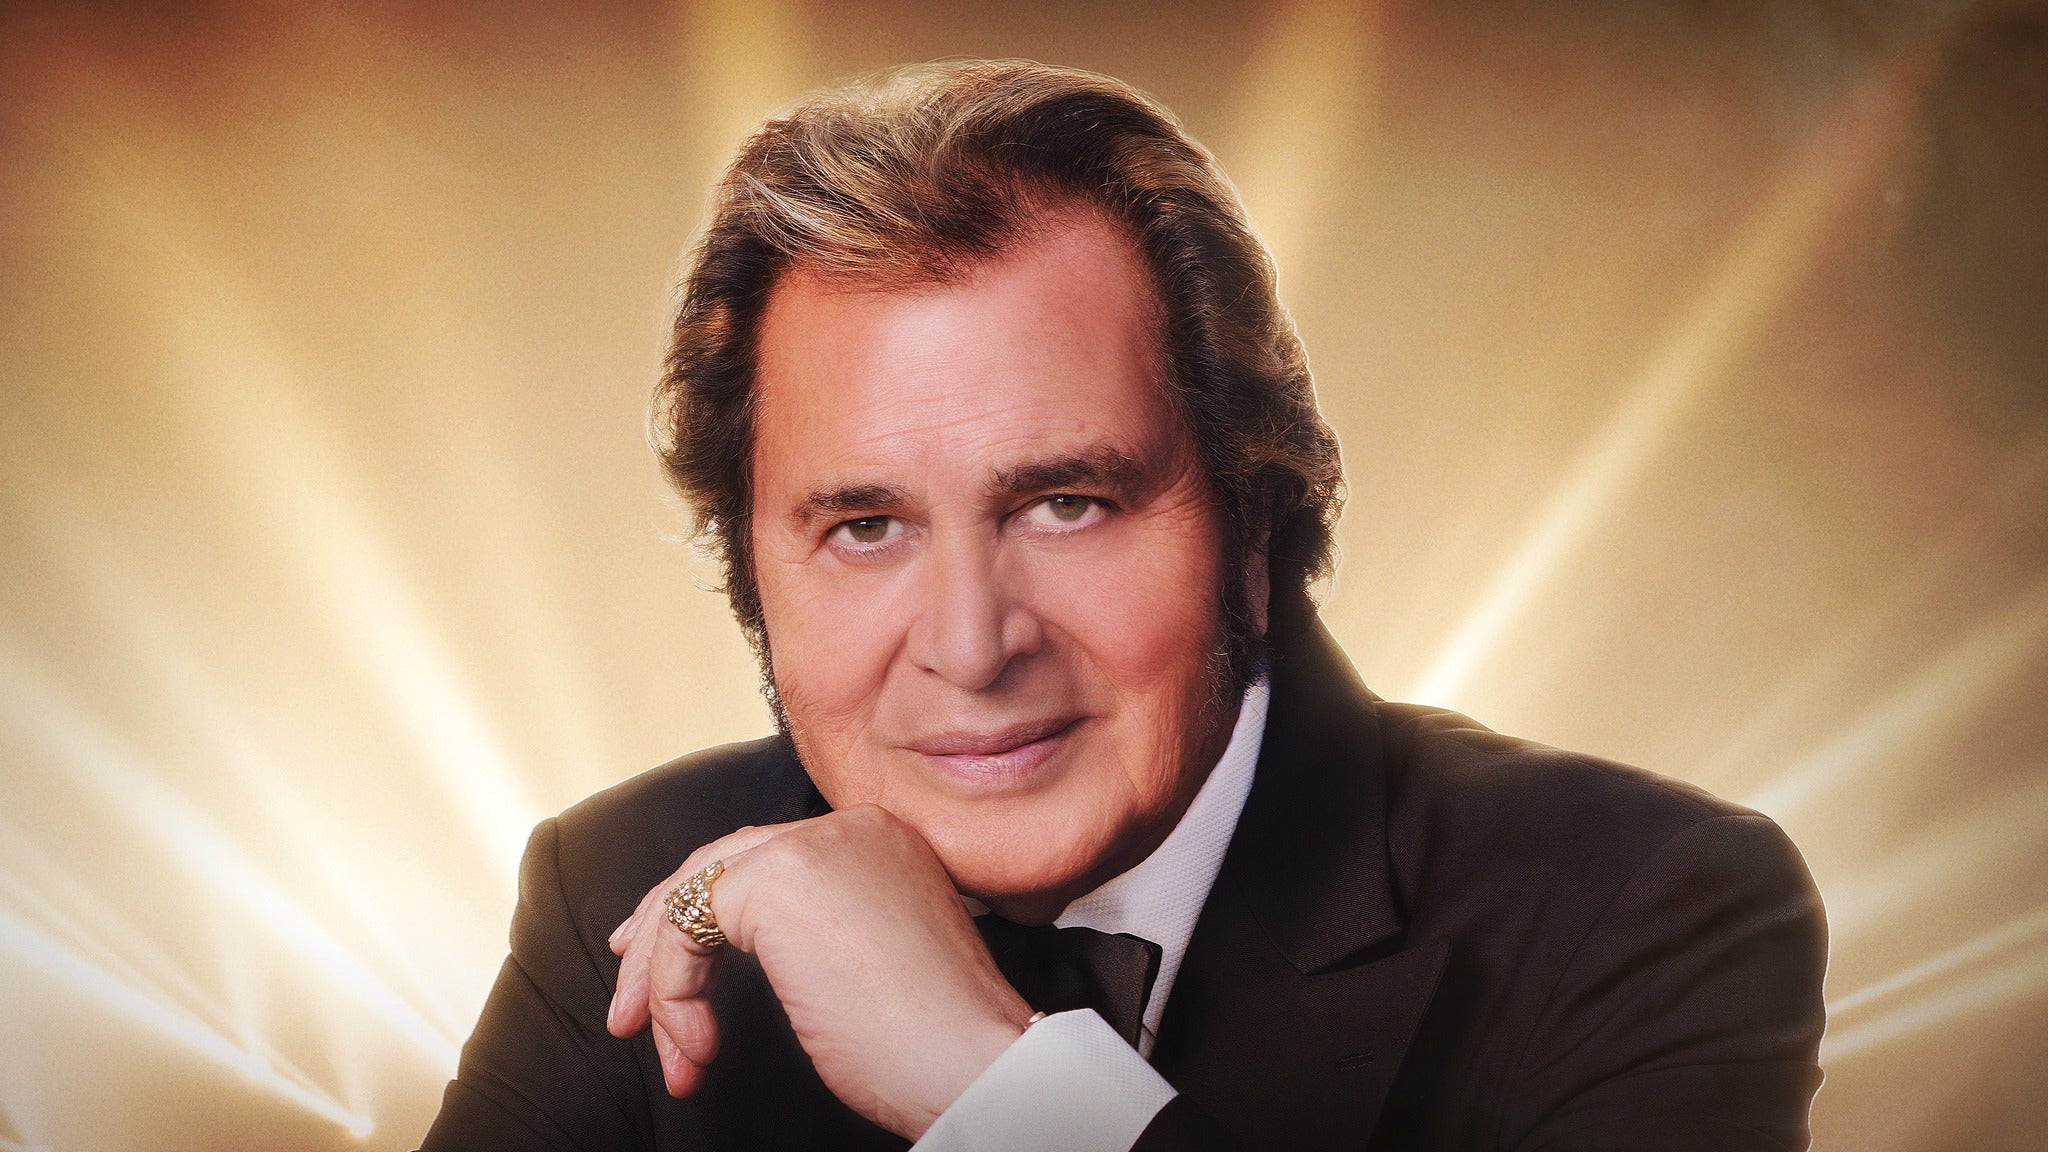 Engelbert Humperdinck at Norsk Hostfest